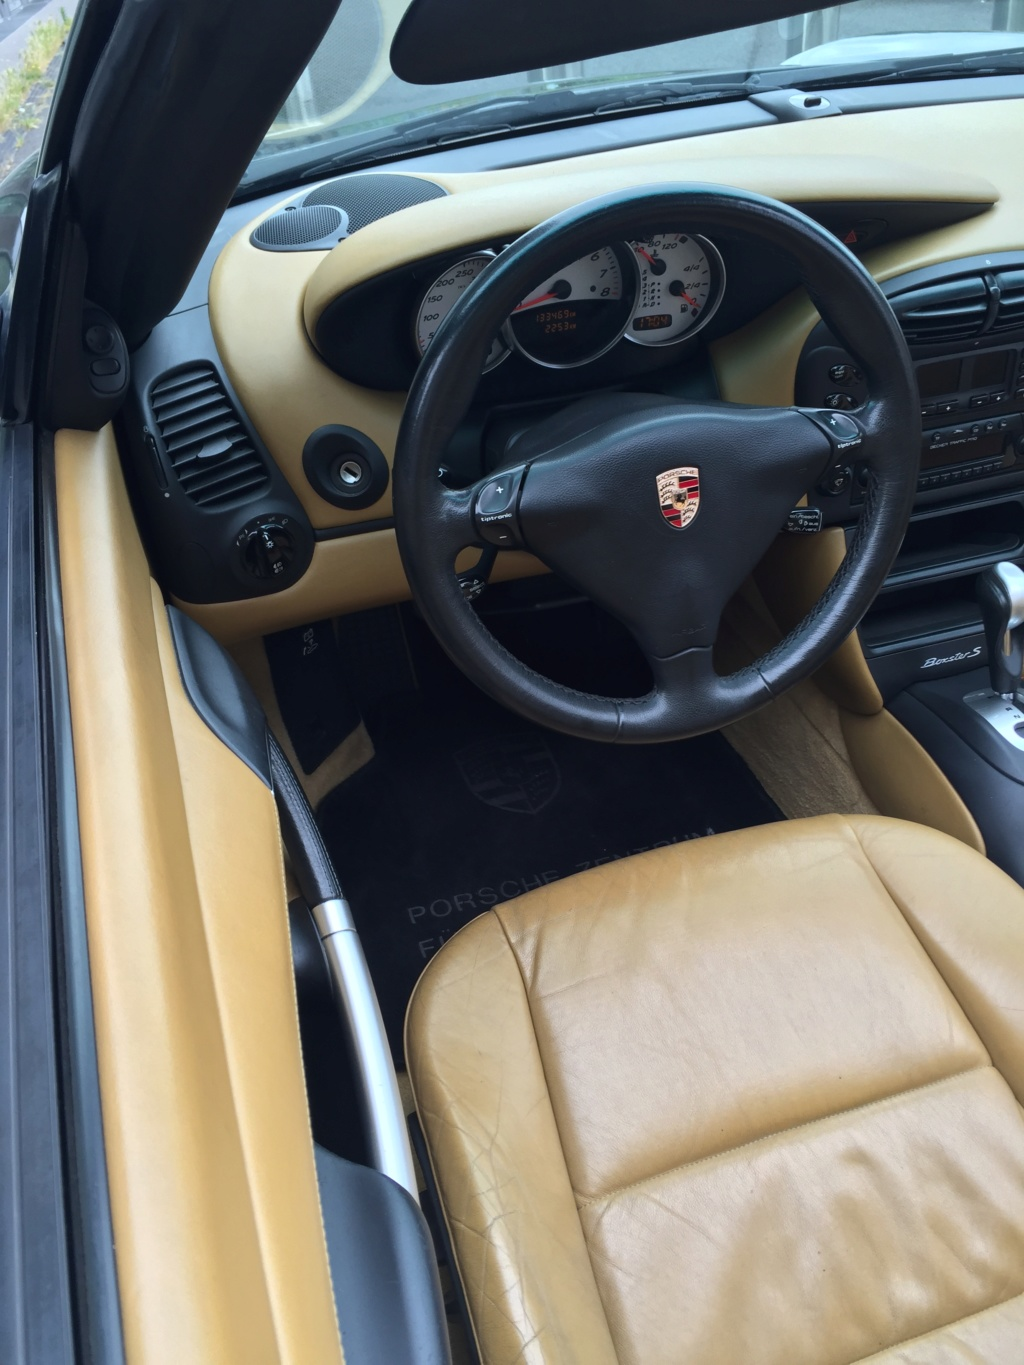 vends boxster s titronic 2001 Img_2015